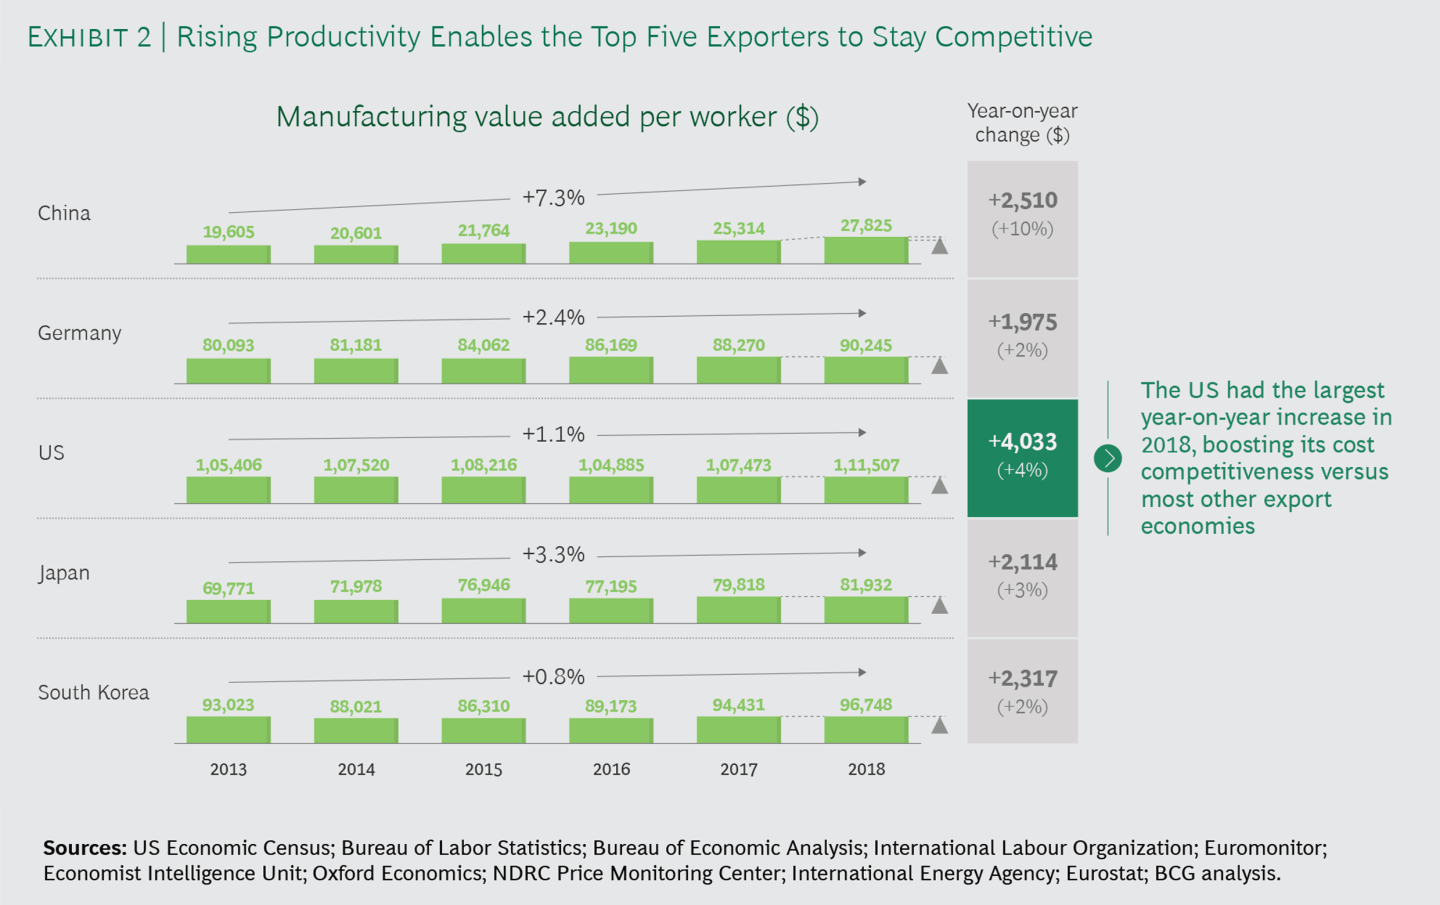 Rising Productivity Enables the Top Five Exporters to Stay Competitive